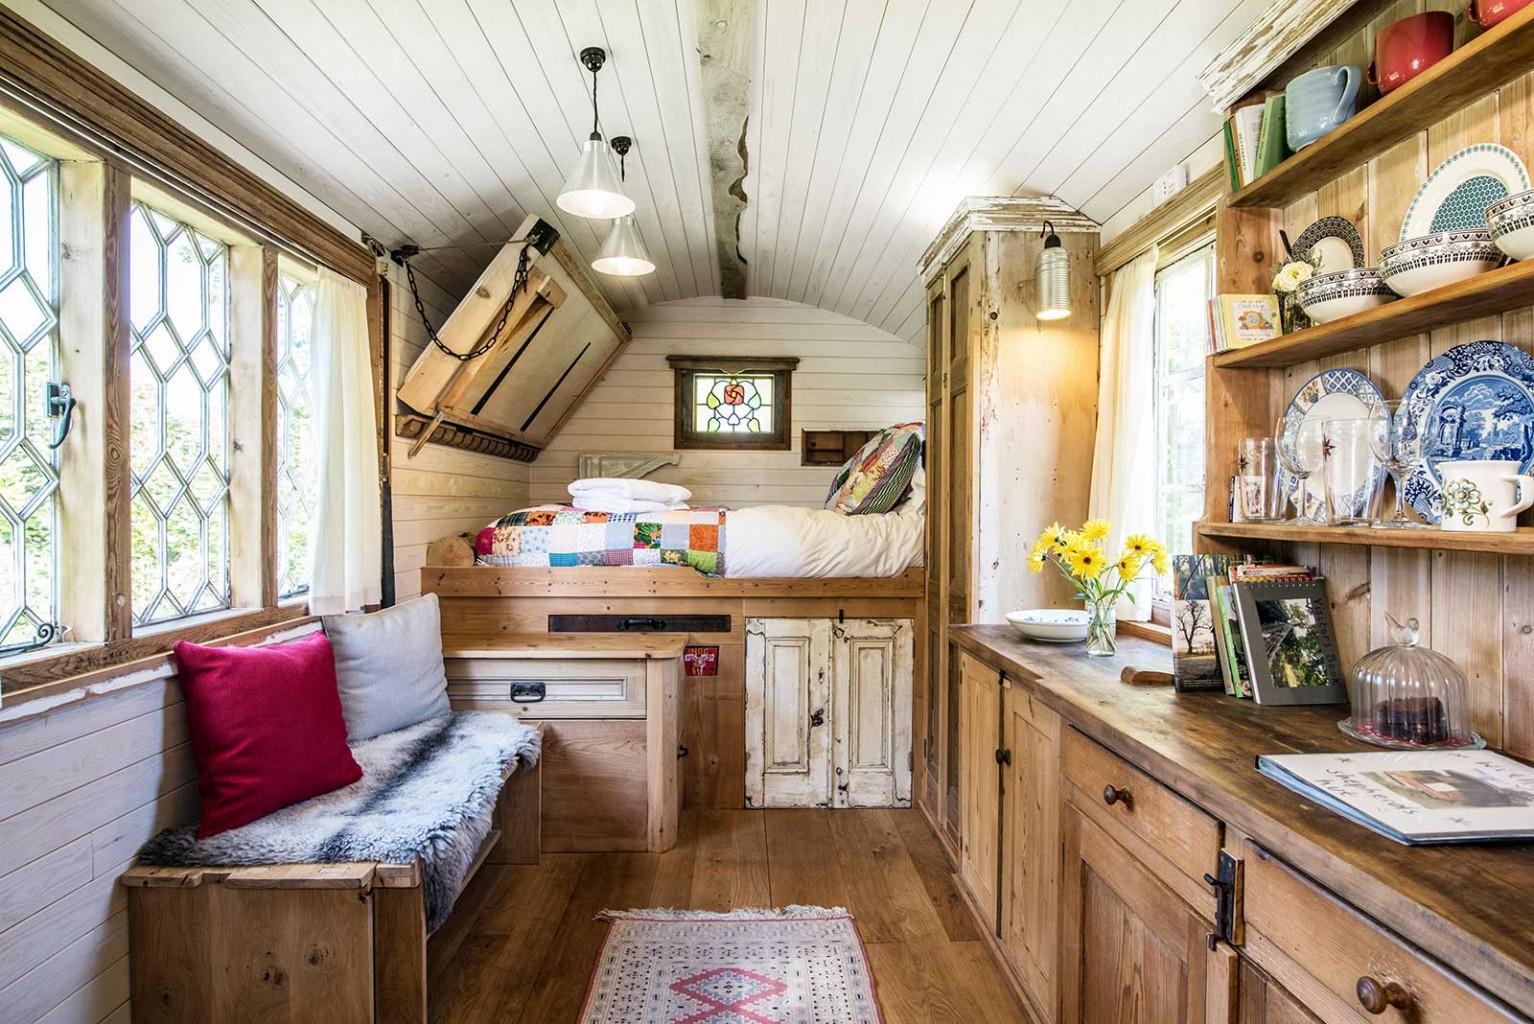 CoolStays Shepherd Hut